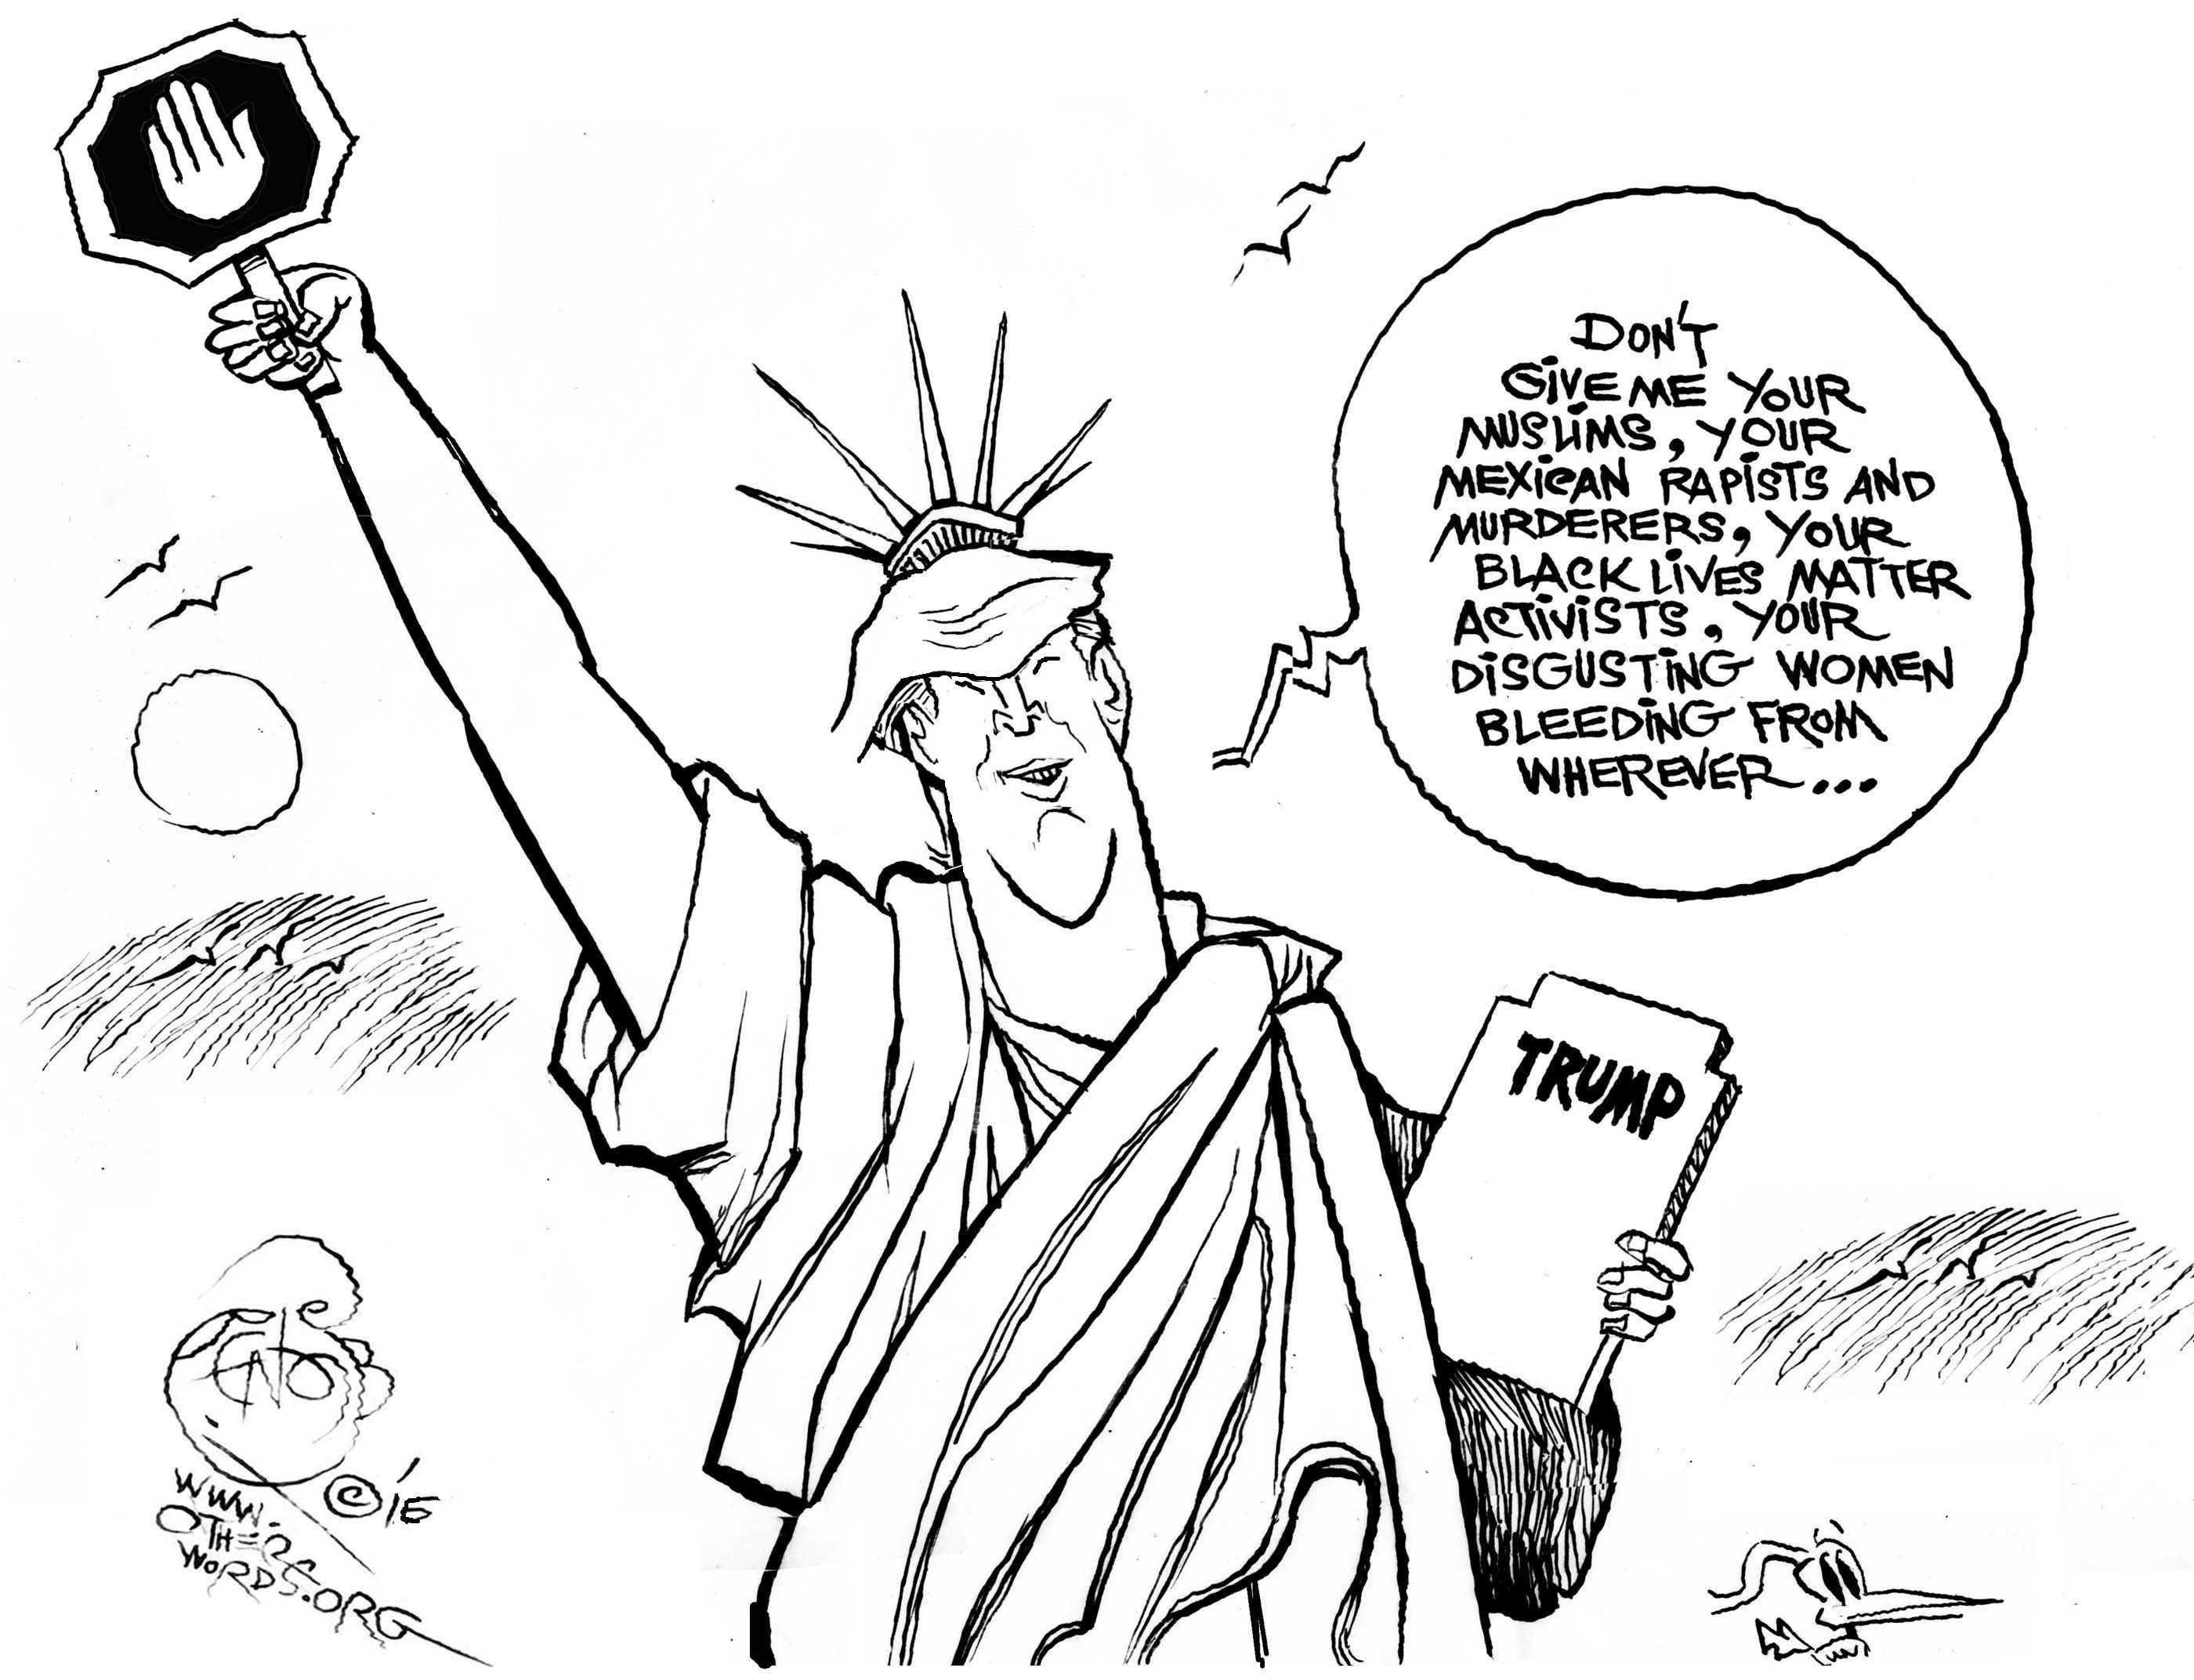 donald trump immigration racism xenophobia statue of liberty